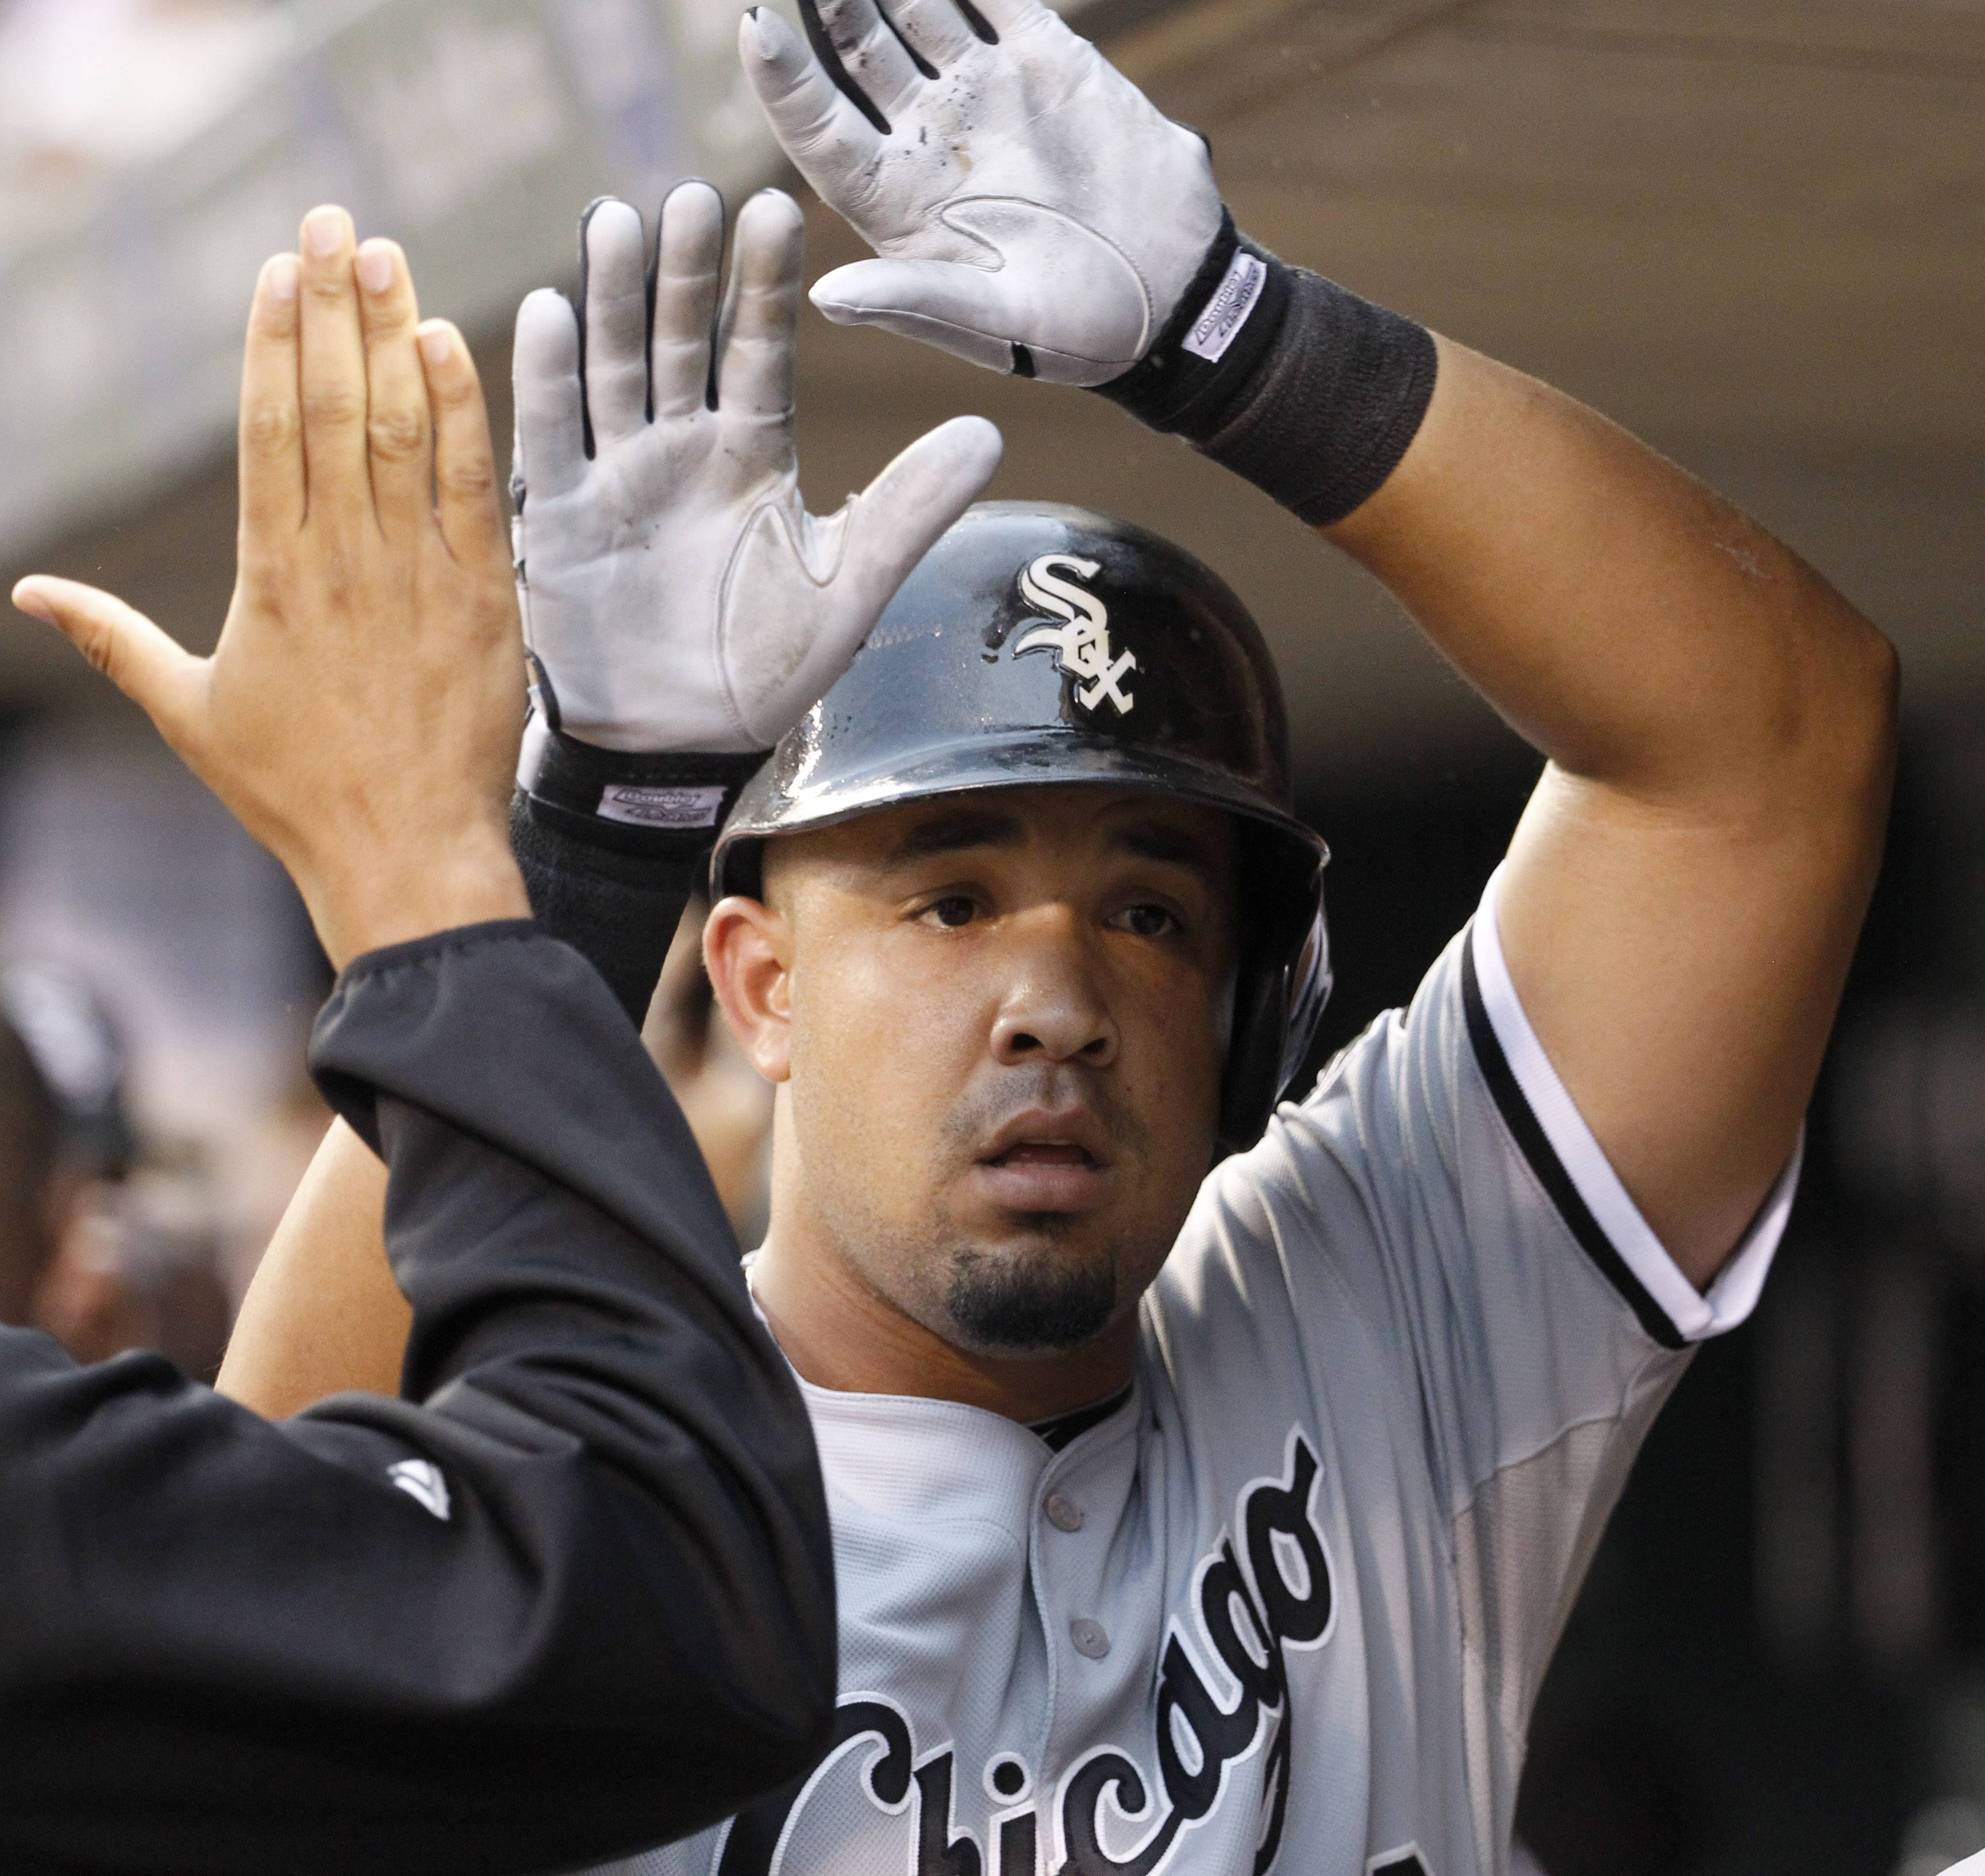 White Sox's Jose Abreu is congratulated in the dugout after his three-run home run off Minnesota Twins starting pitcher Kevin Correia during the first inning of a baseball game in Minneapolis, Friday.